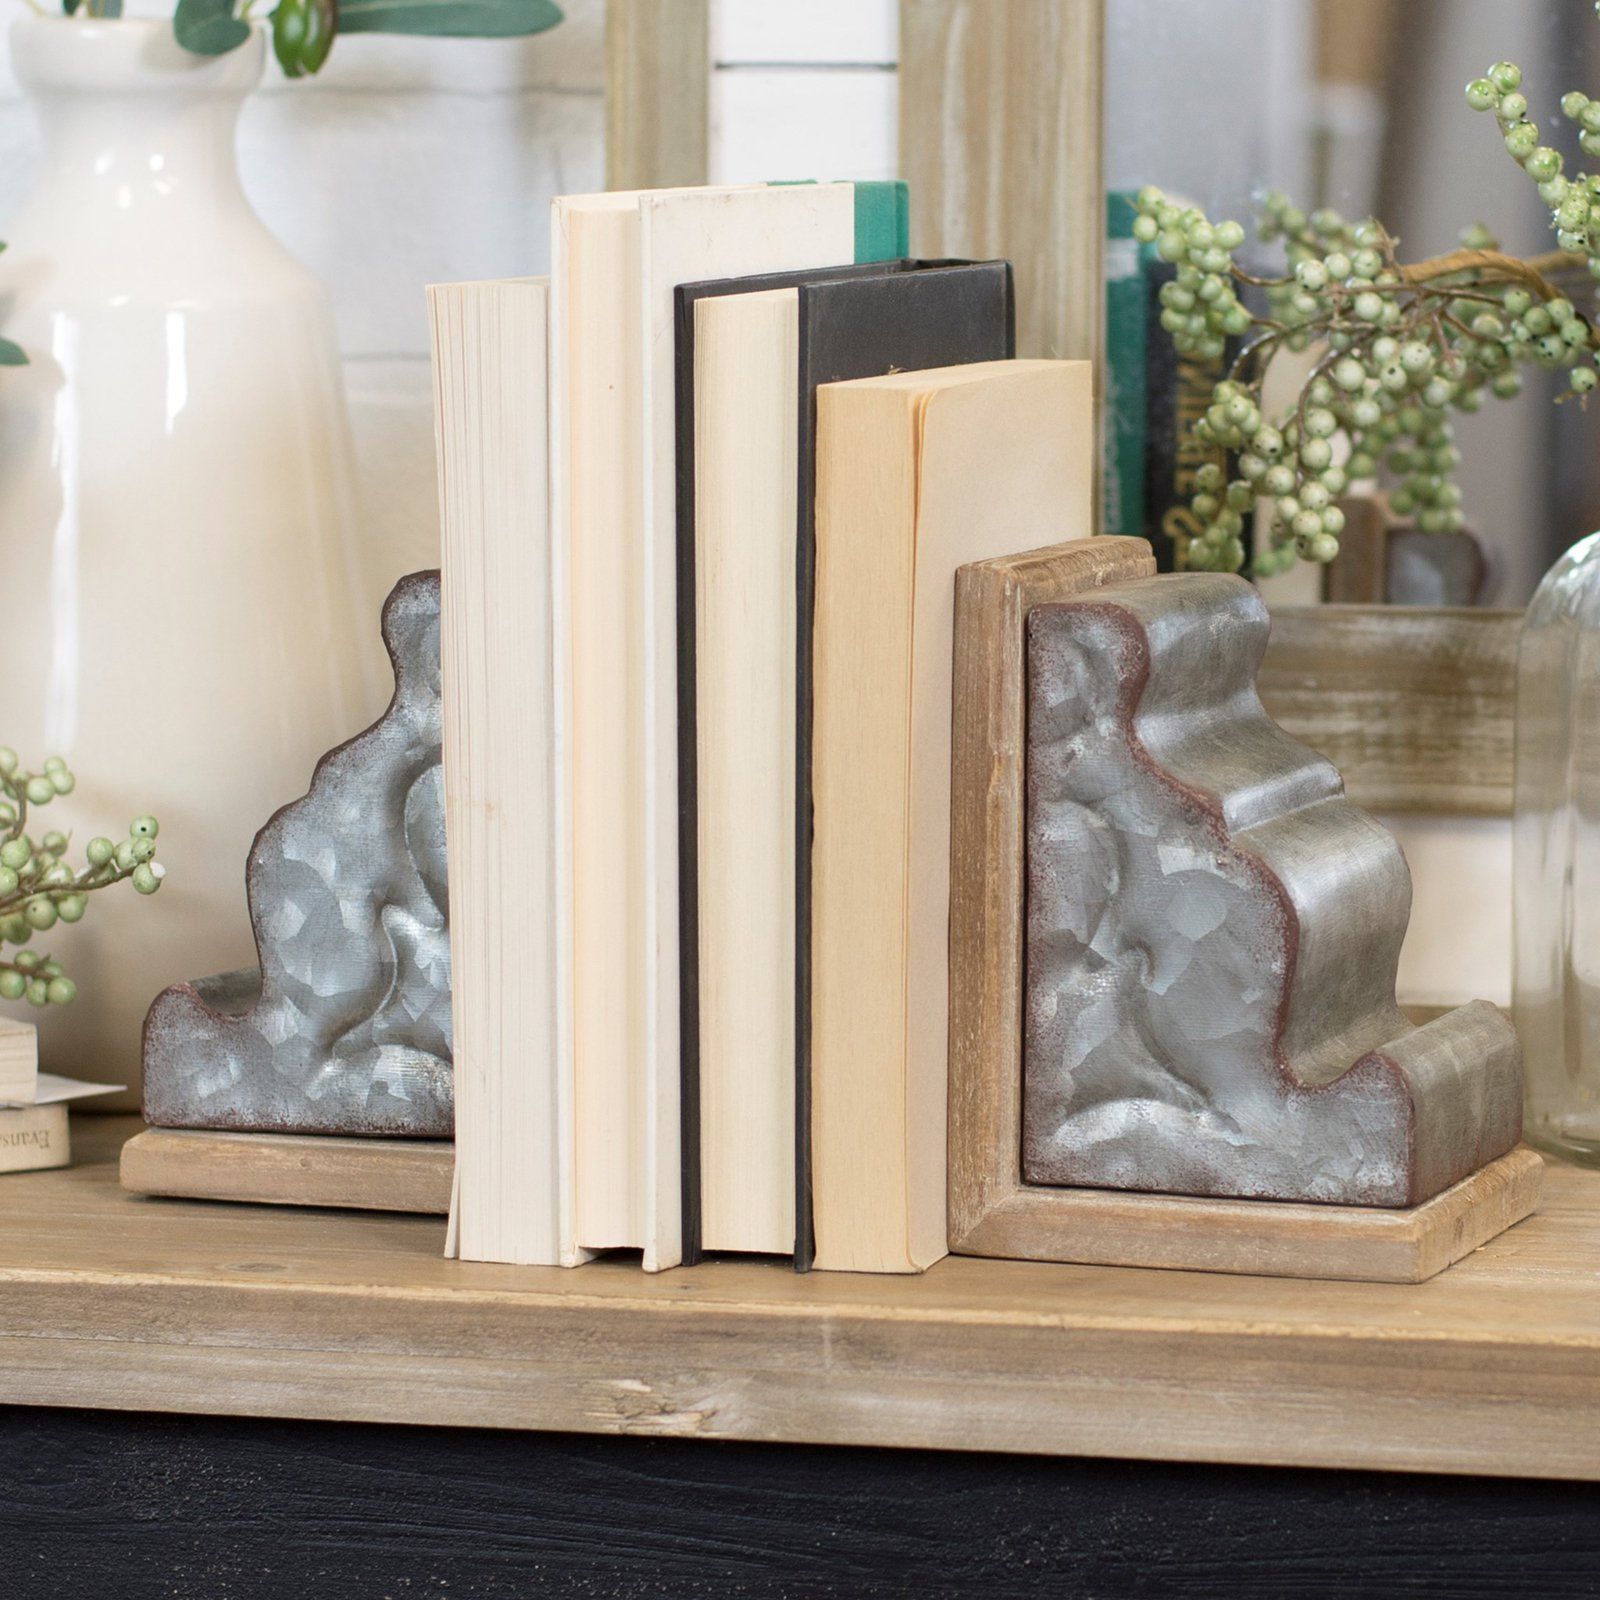 American Mercantile Metal and Wood Bookend Set of 2 by VIP International